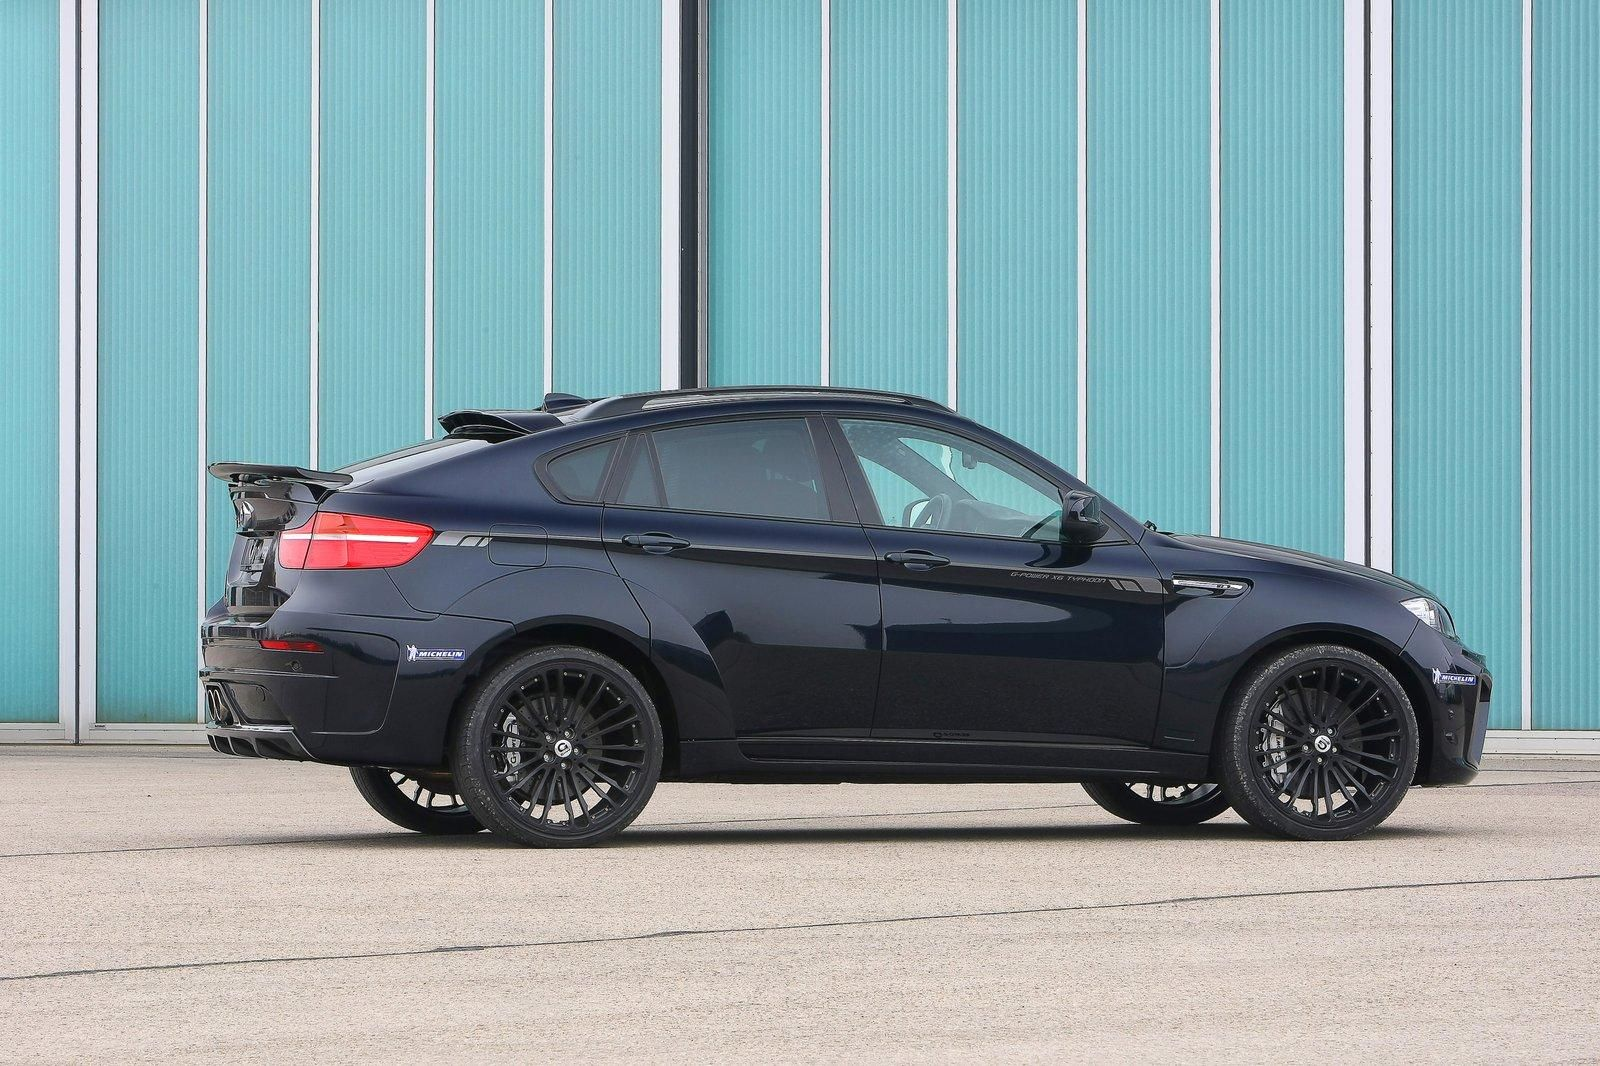 G Power X6 M Typhoon Wide Body In 2020 Bmw X6 Bmw Wide Body